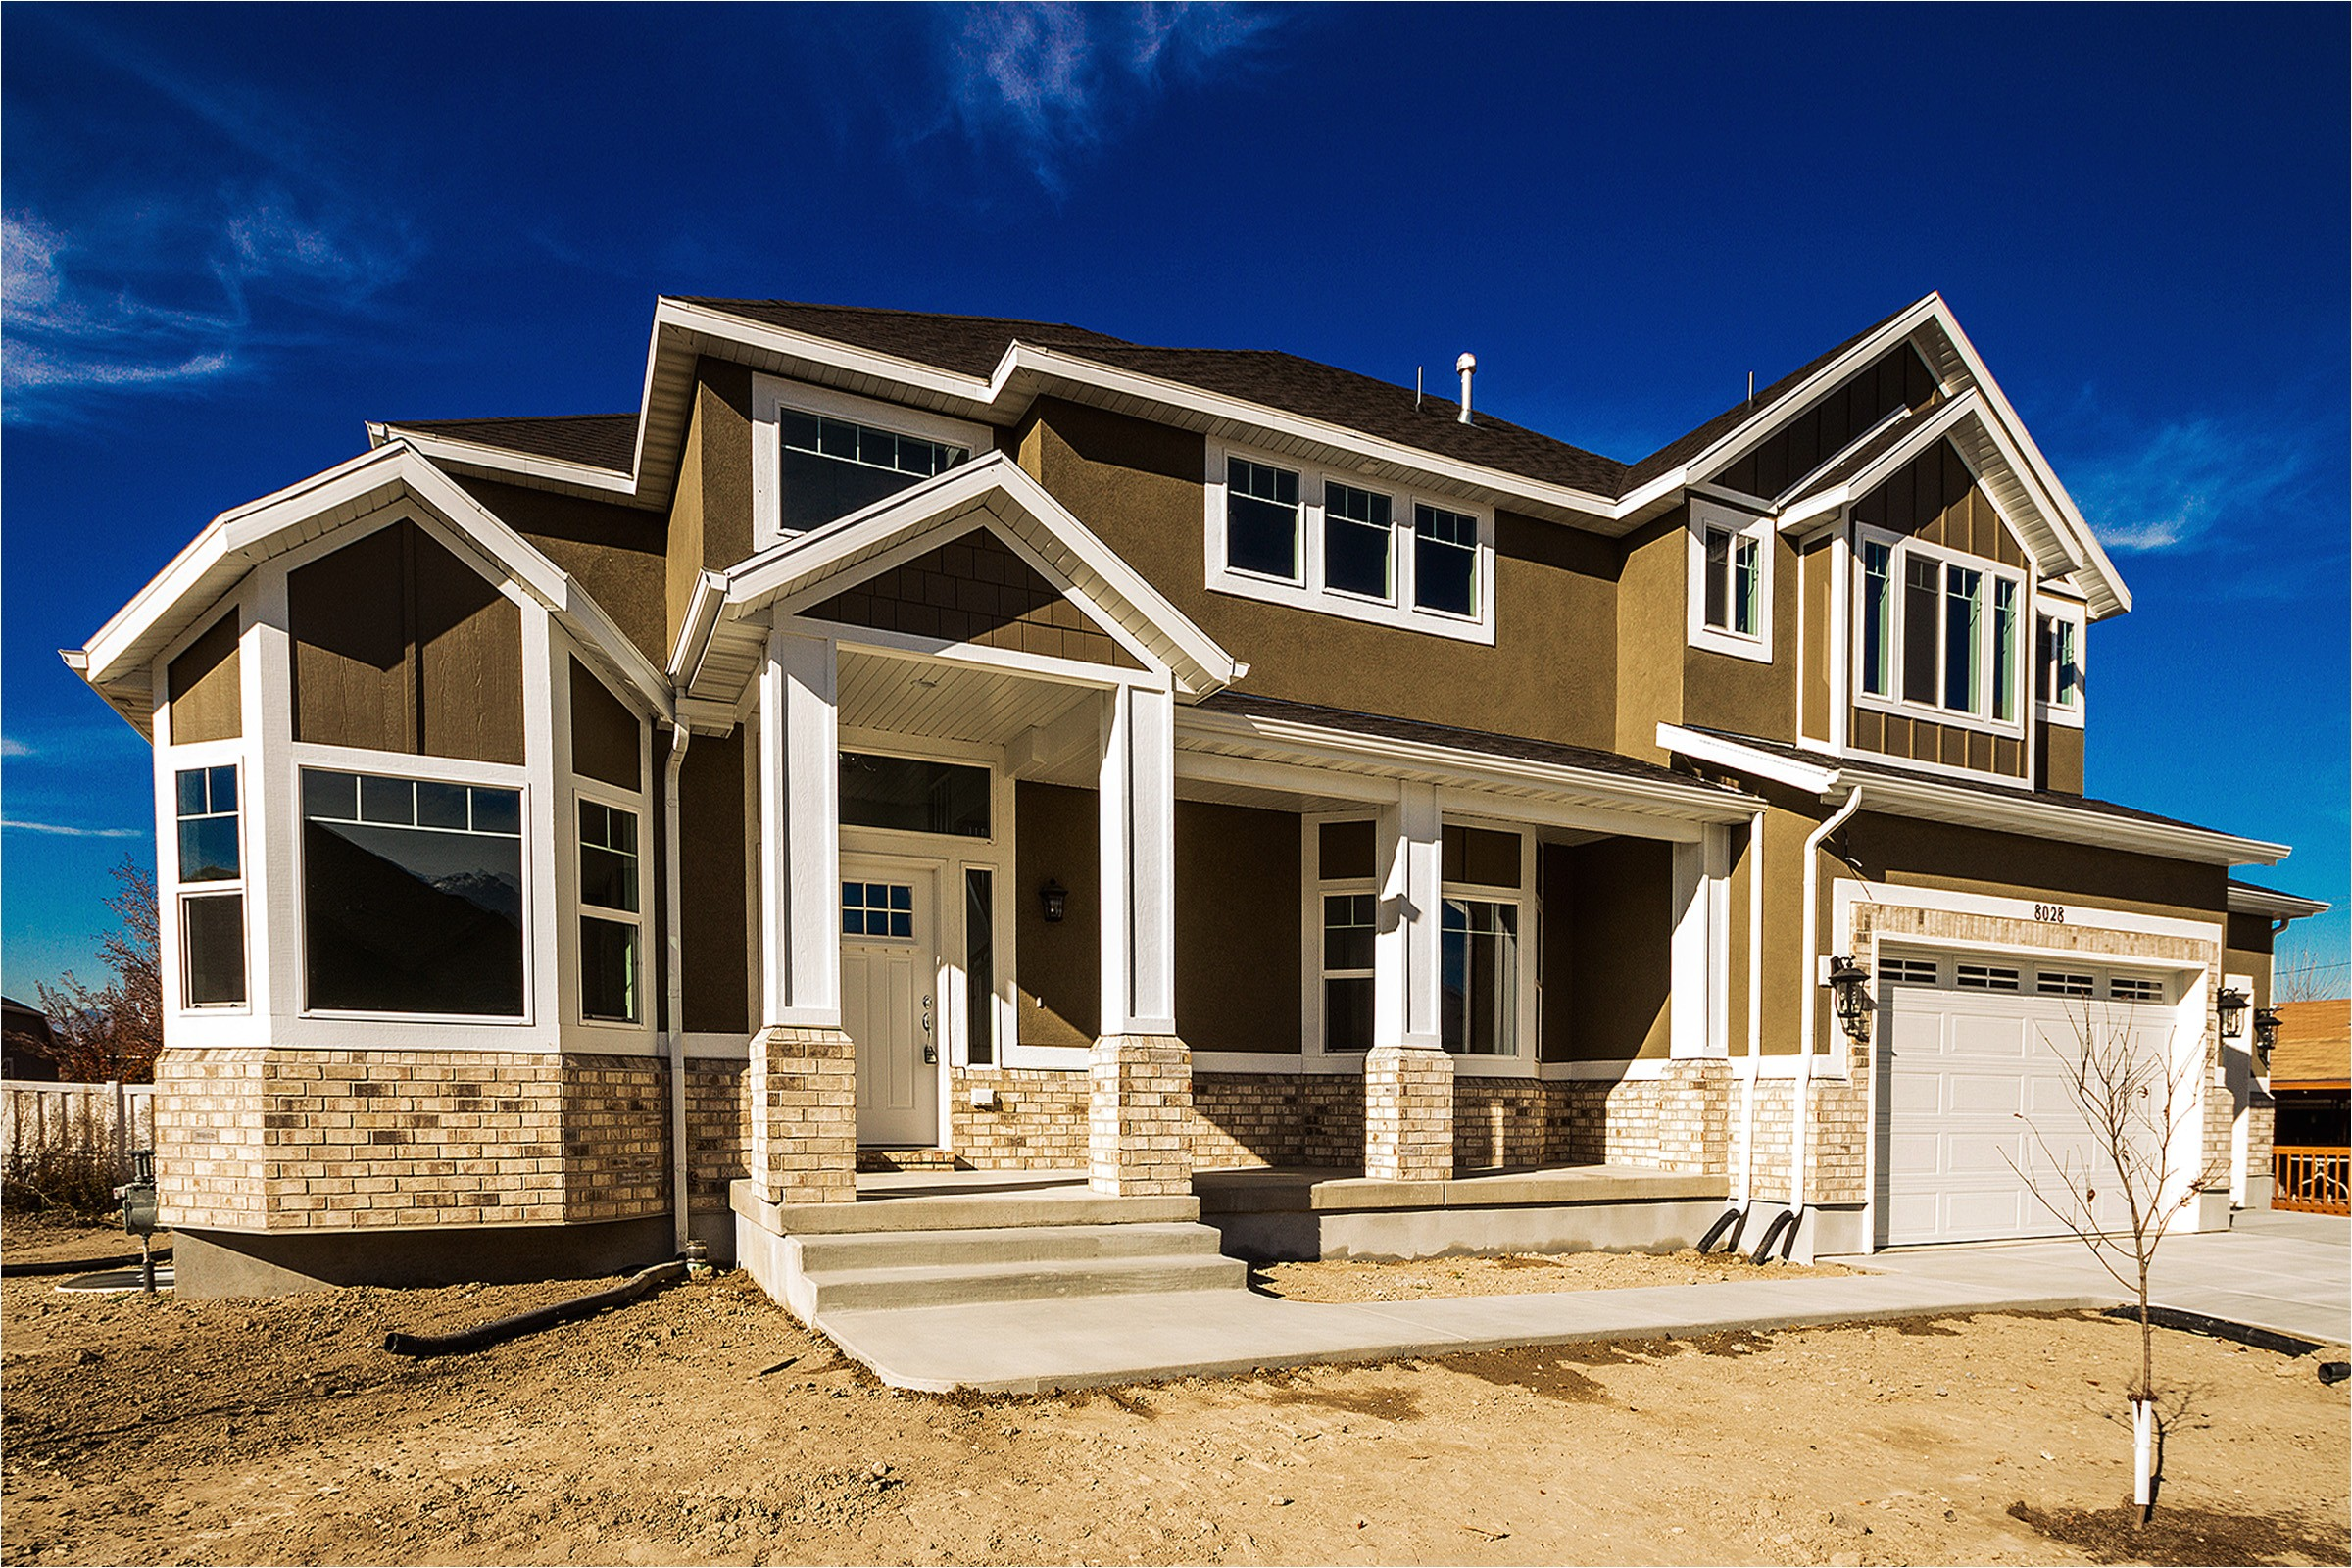 architect designed houses for sale